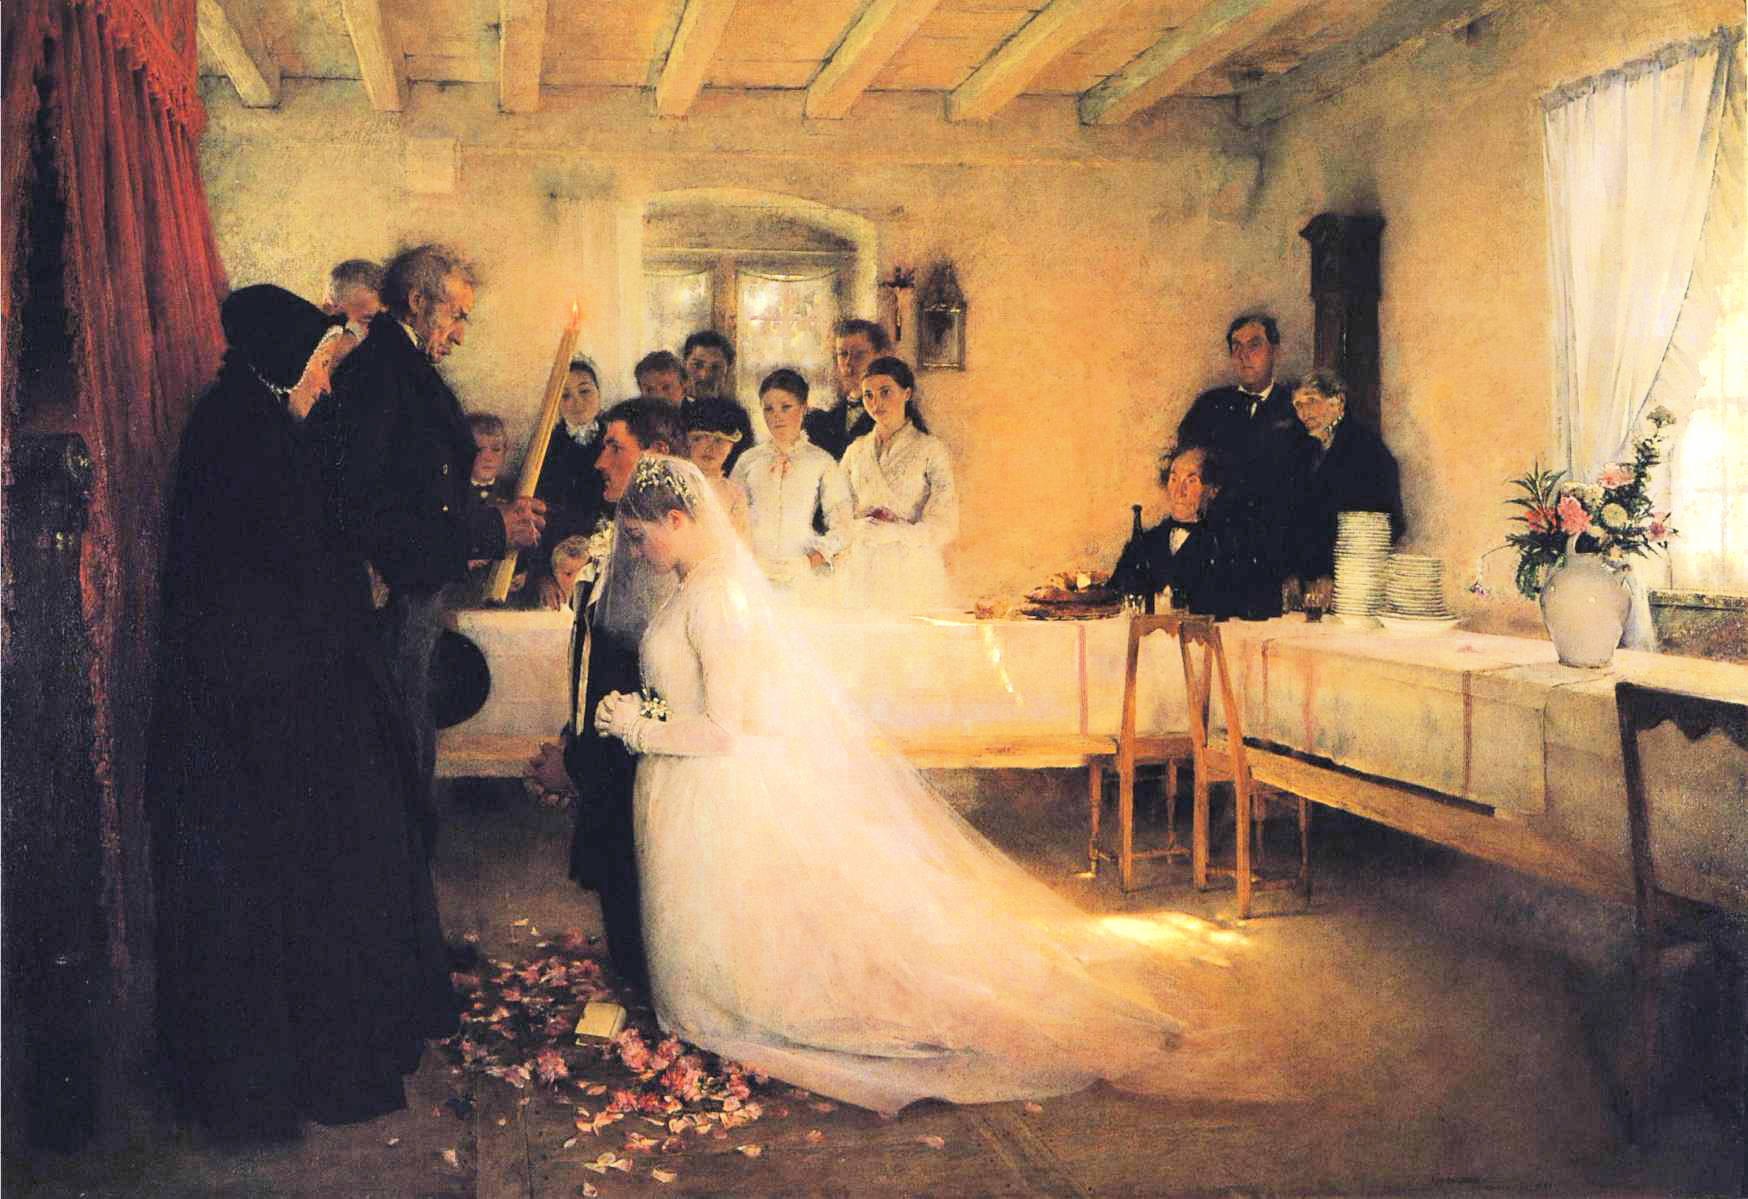 th century marriage manuals advice for young husbands mimi blessing of the young couple before marriage by pascal dagnan bouveret 1880 81